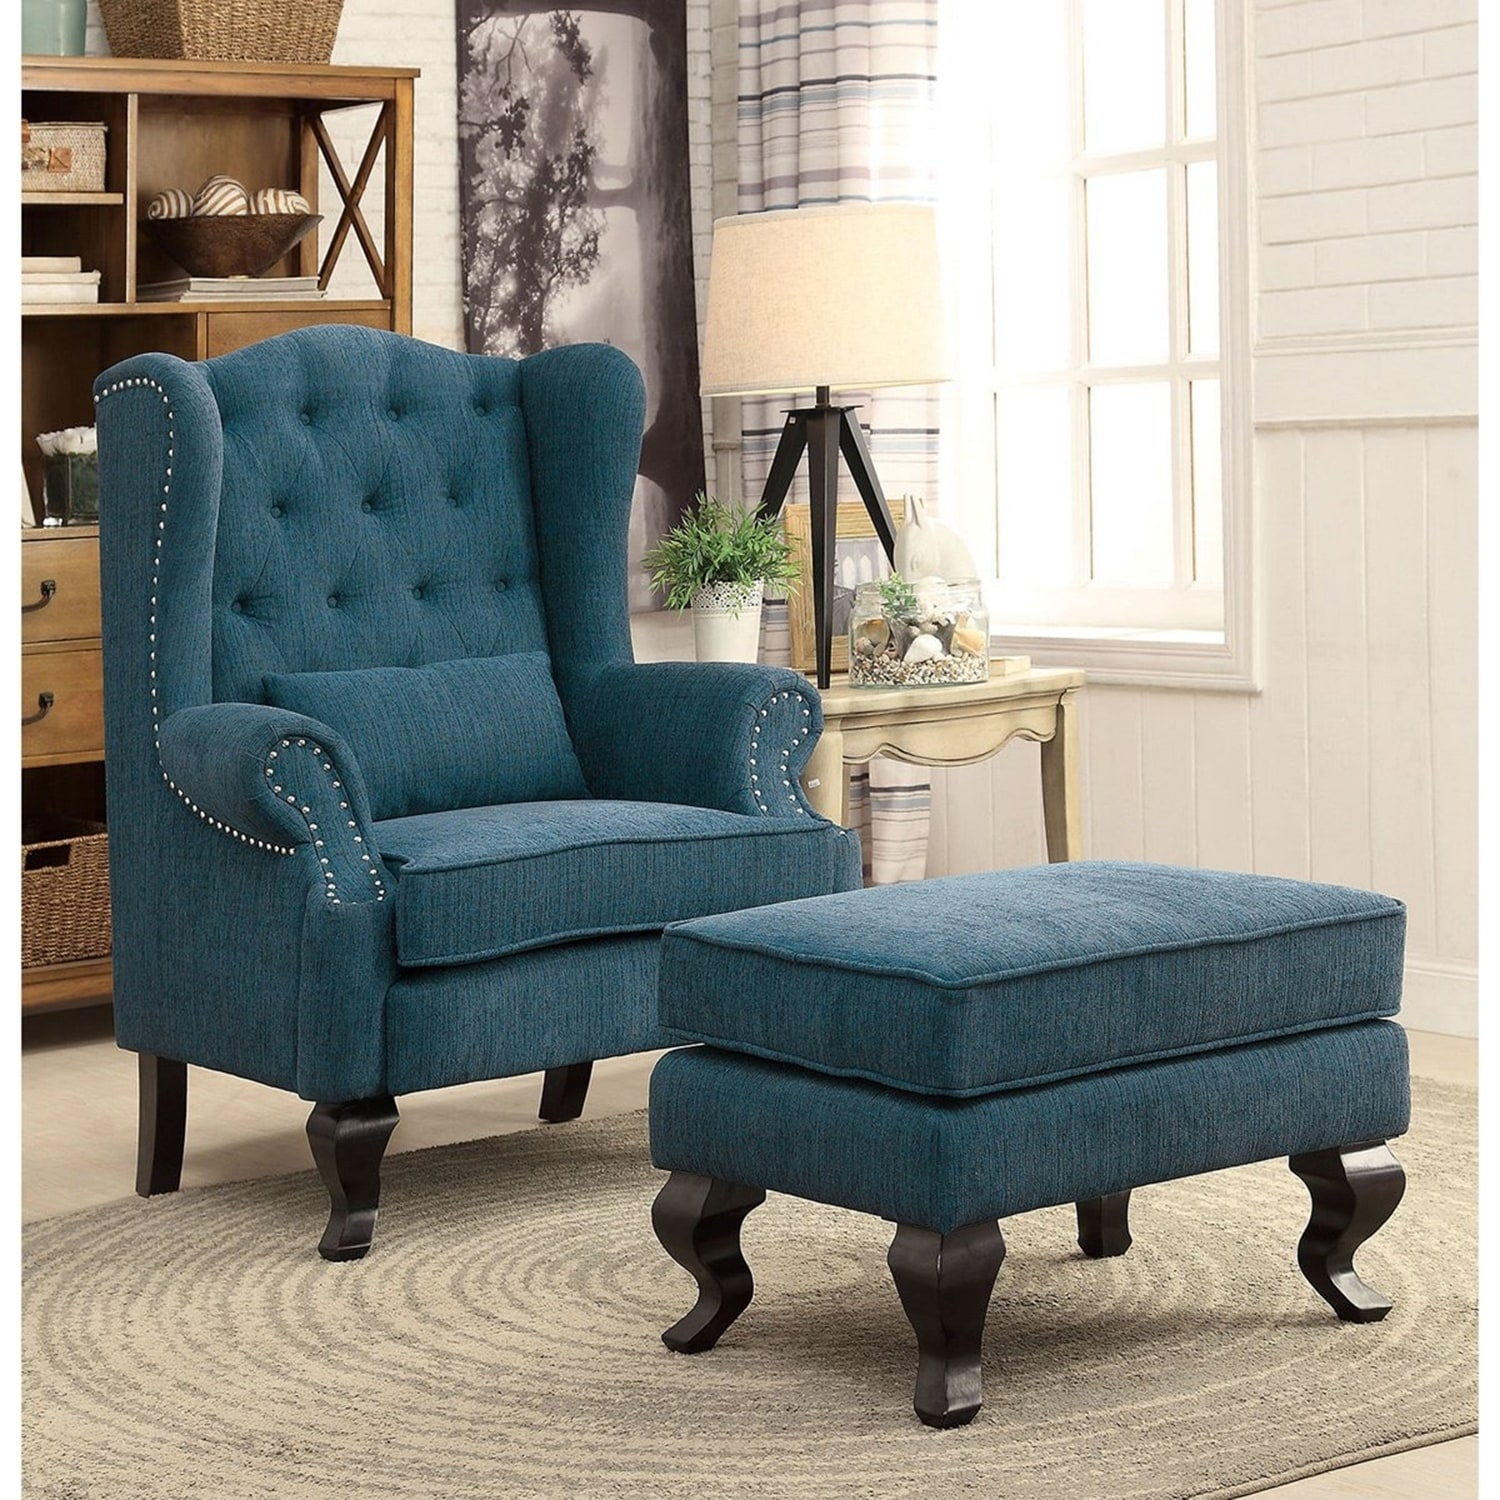 Furniture Of America Irving Traditional 2 Piece Wingback Armchair And  Ottoman Set By FOA   Walmart.com